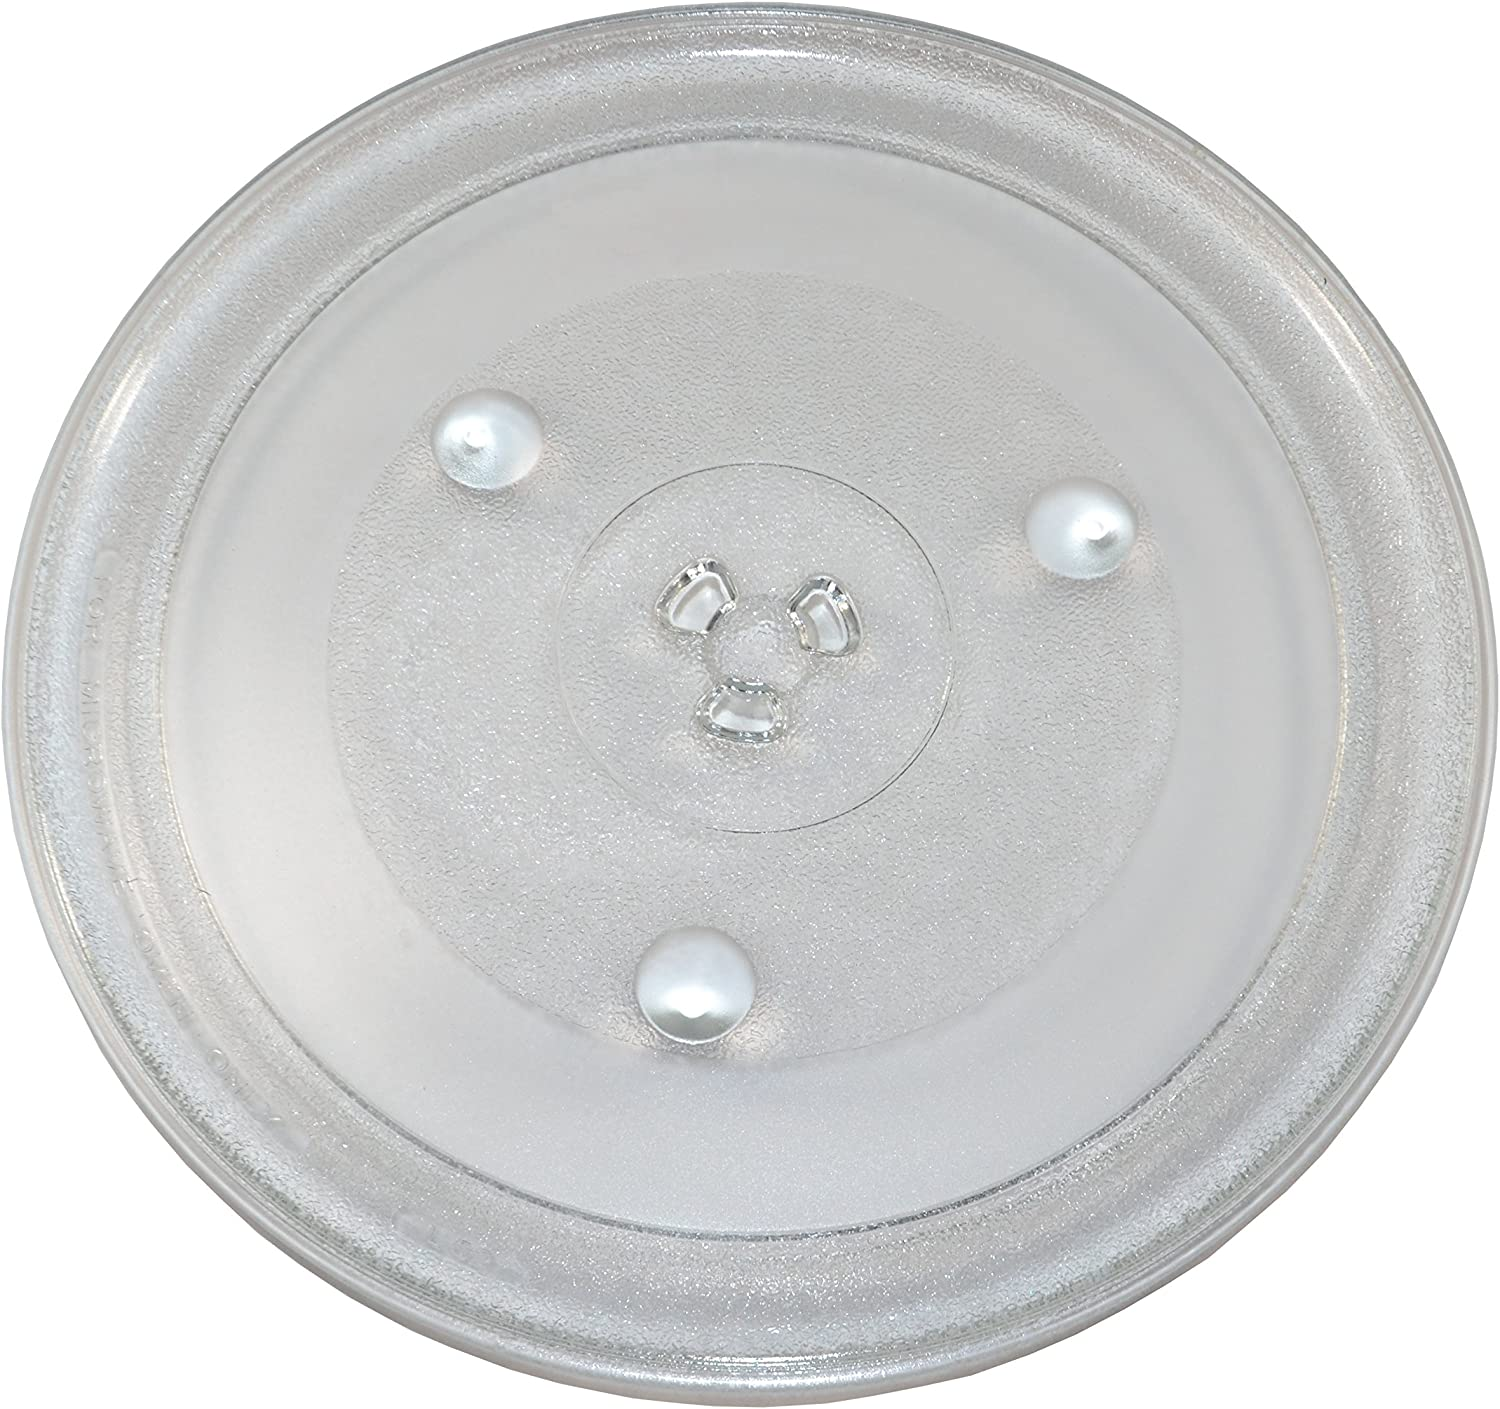 """HQRP 12.375"""" / 31.5cm Glass Turntable Tray fits GE General Electric, Hamilton Beach, Frigidaire, Emerson, Oster, Magic Chef, Panasonic Microwave Oven Cooking Plate 12-3/8-inch 315mm H4-899"""